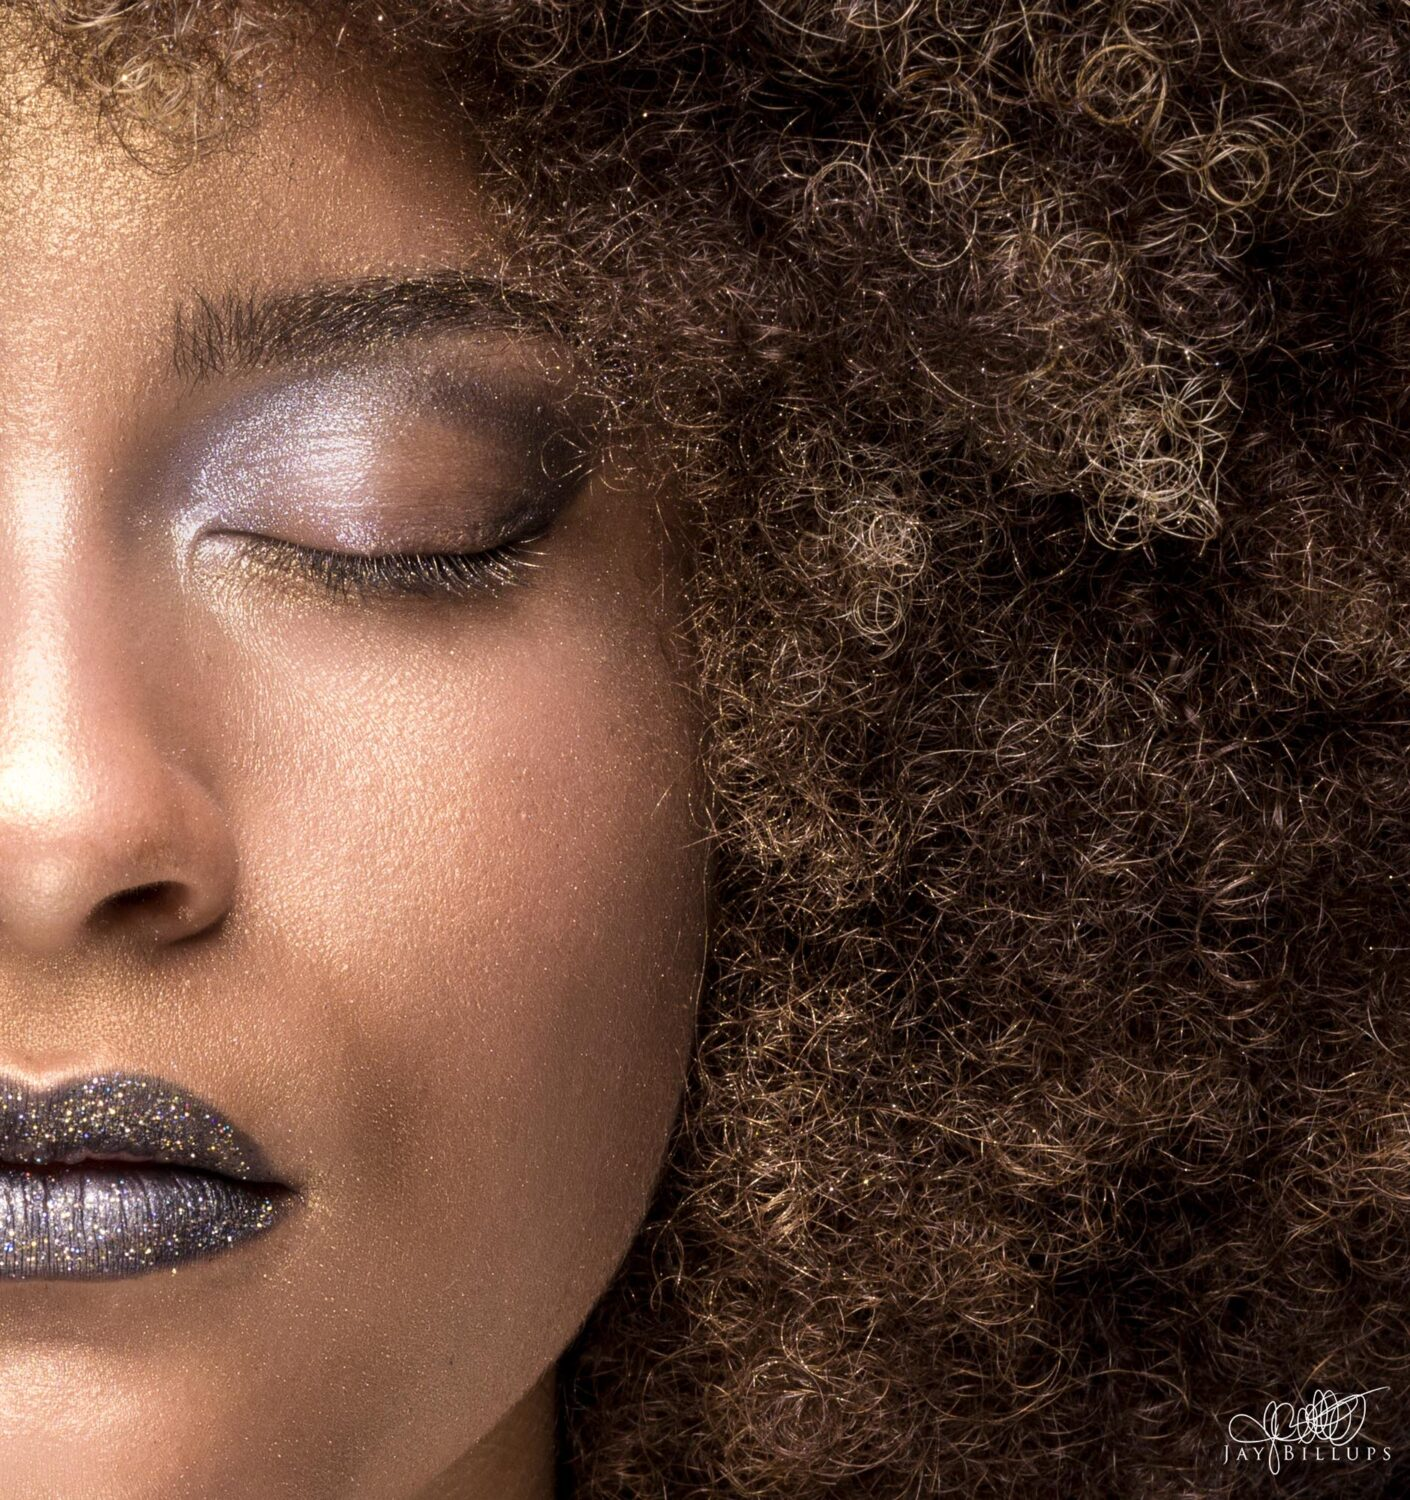 Close up of an`African American woman with her eyes closed. Afro taking up half of the frame